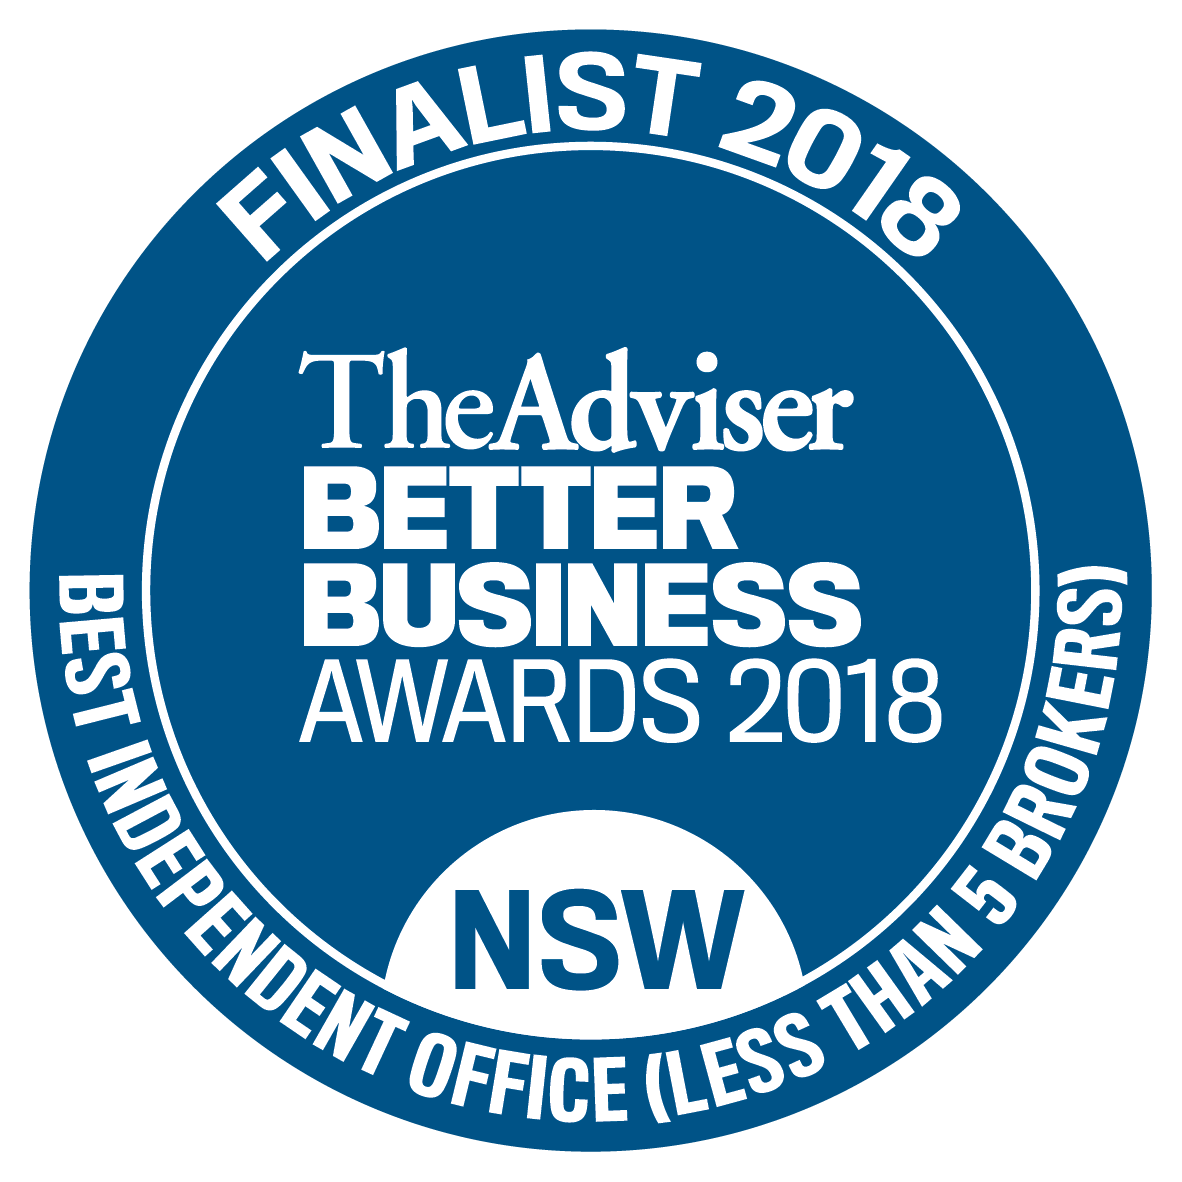 BBS_Finalists__Best Independent Office (less than 5 brokers).png